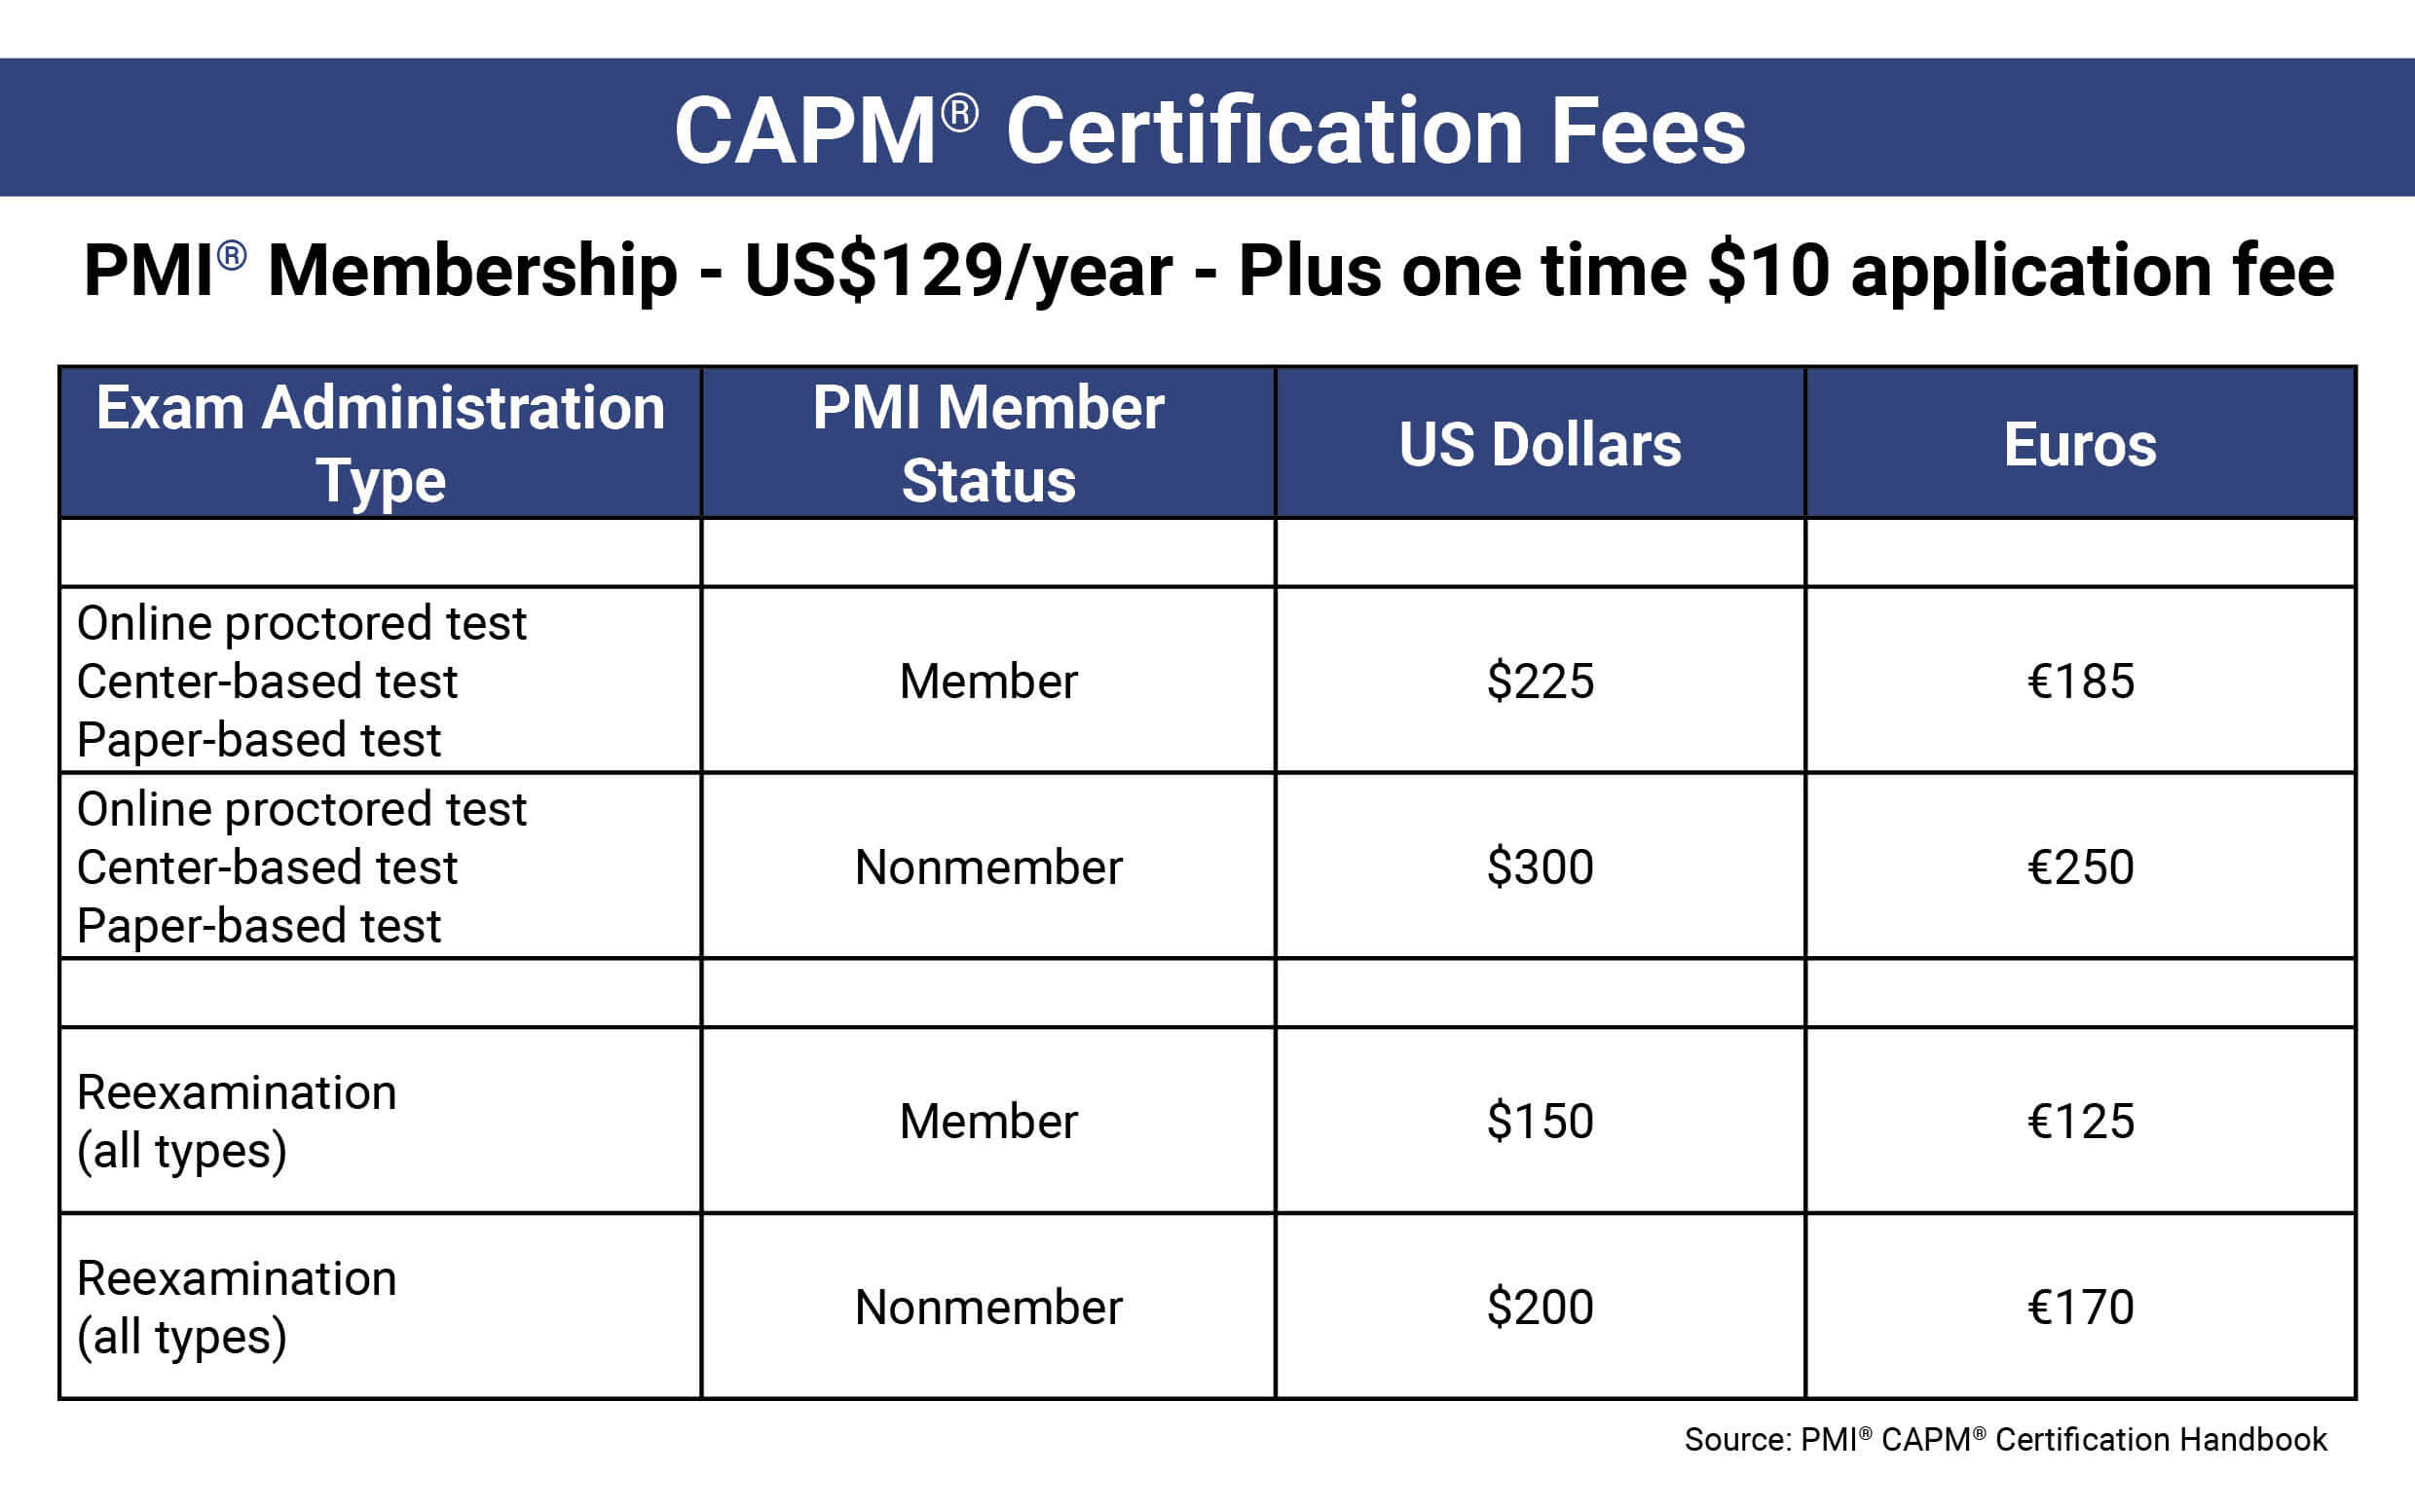 CAPM Certification Fees